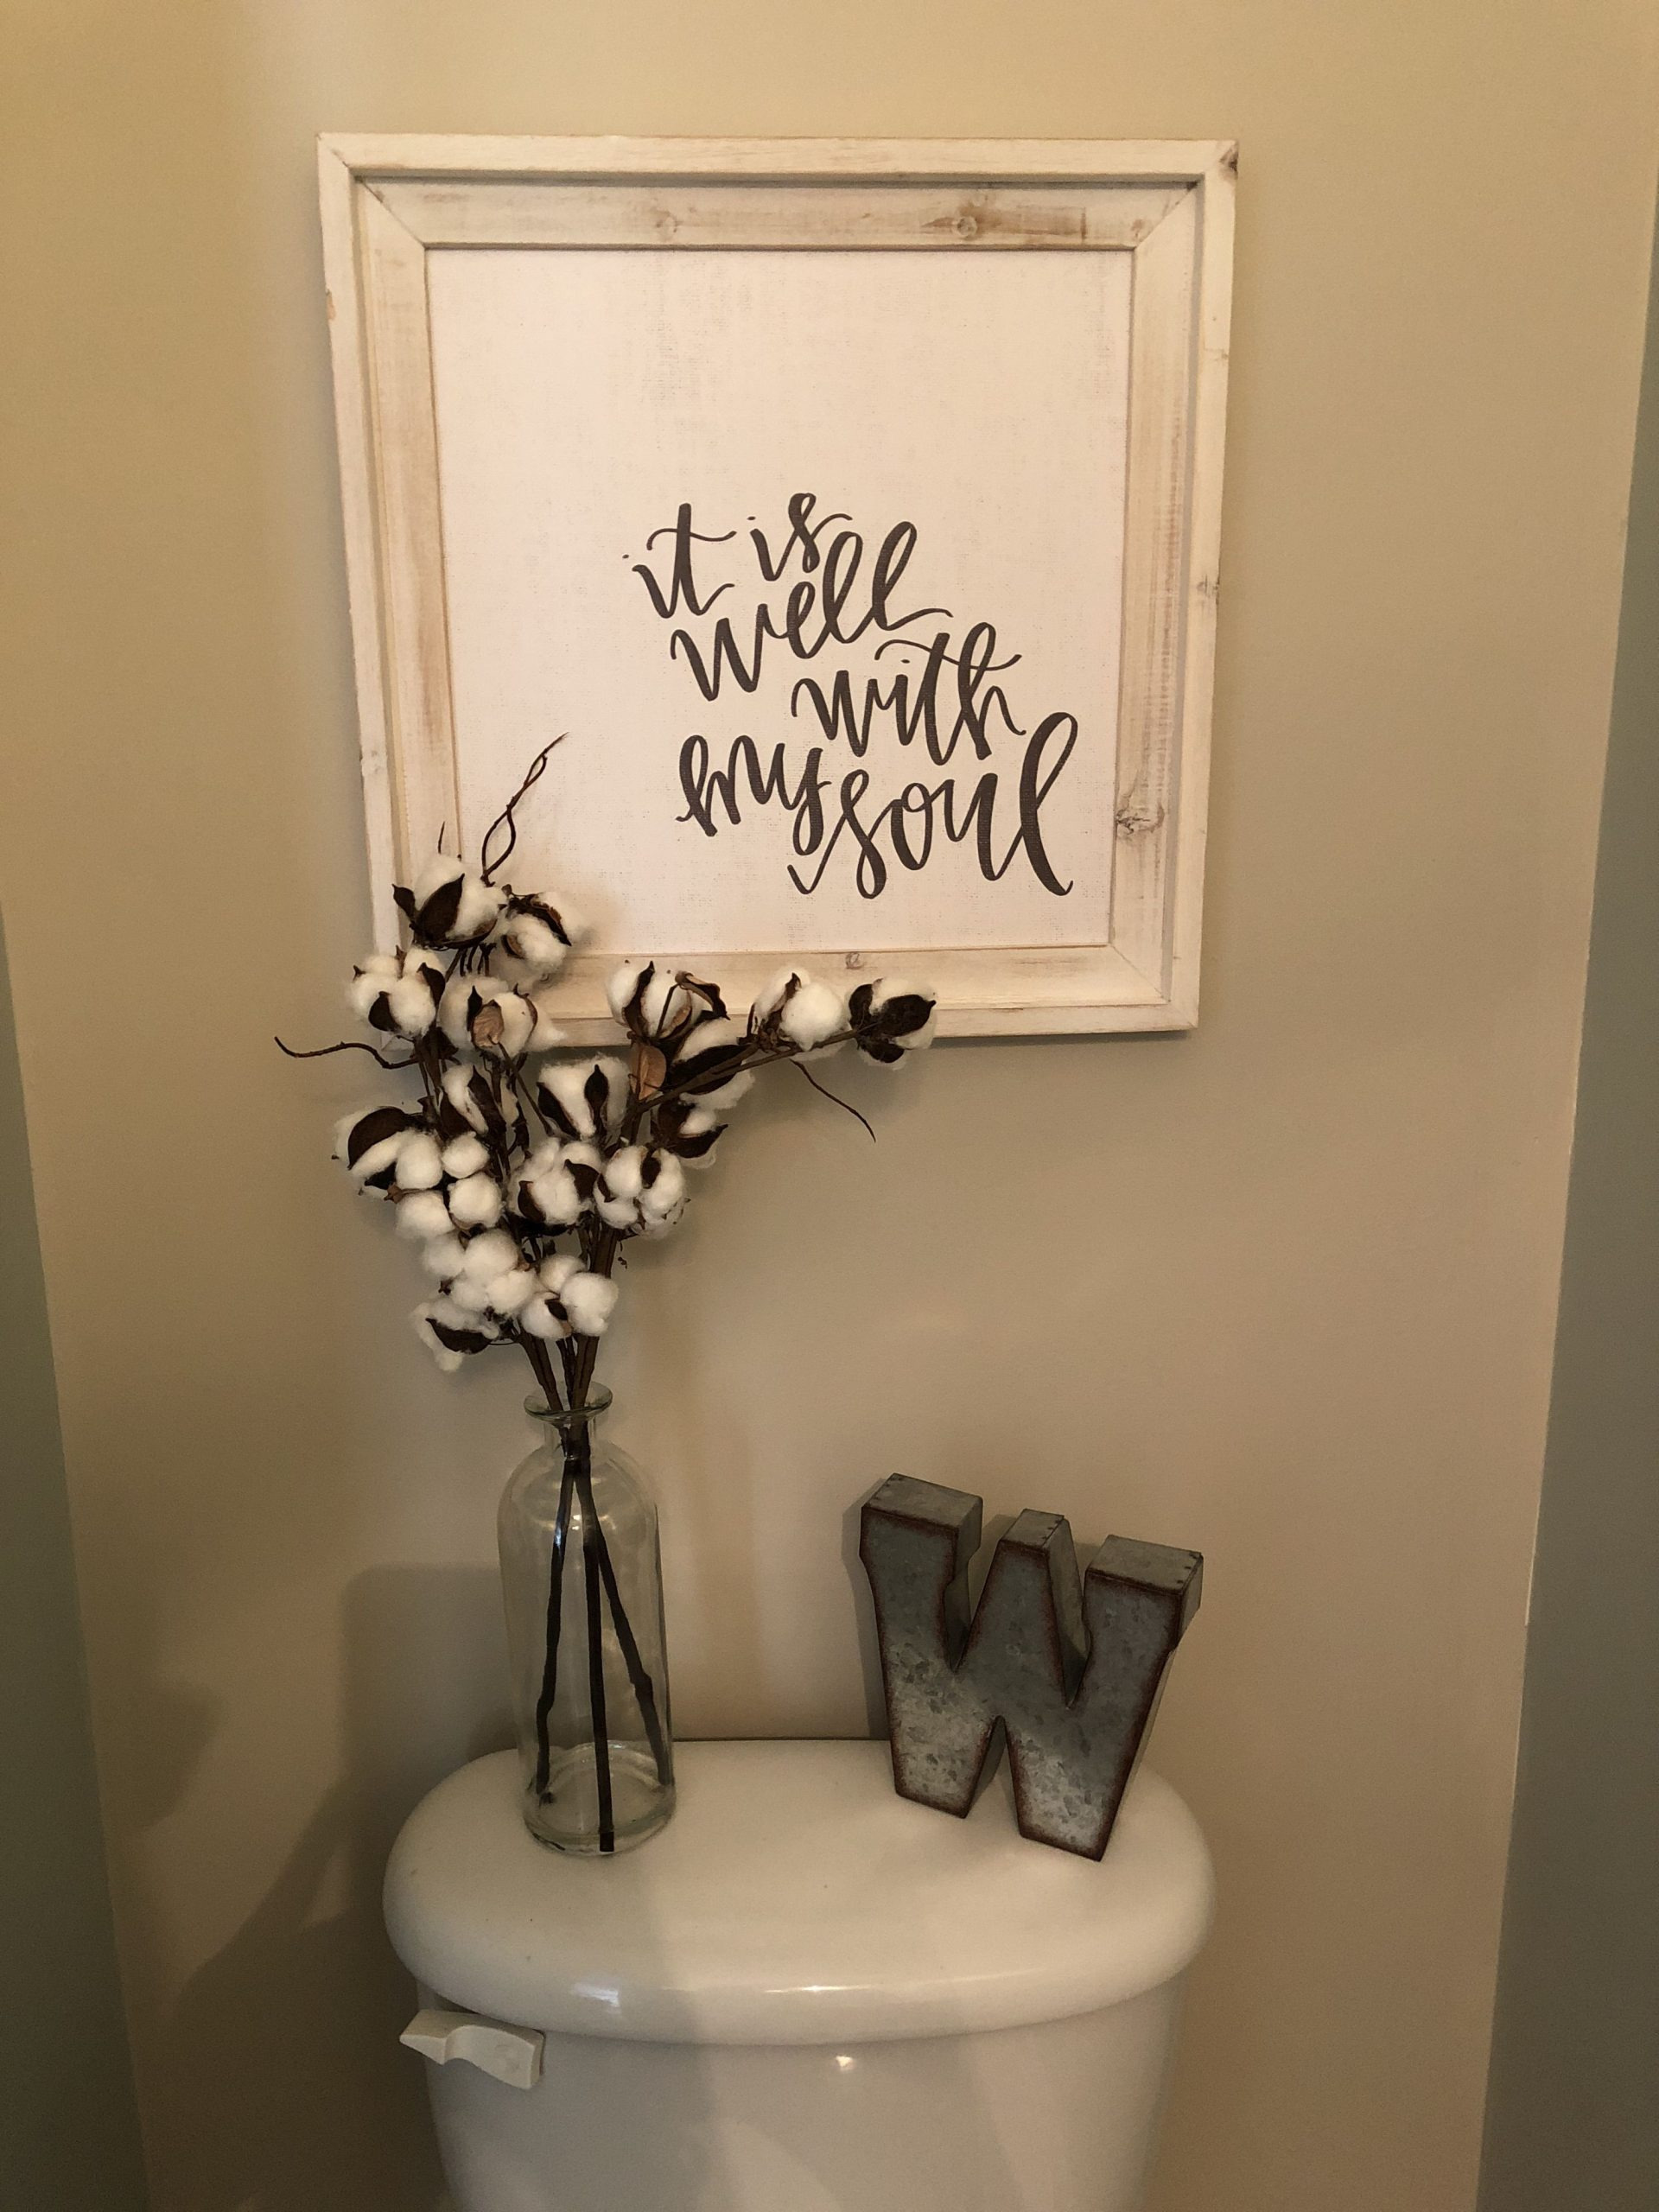 Wall Decor for Bathroom Inspirational Guest Bathroom Wall Decor French Country Flower for